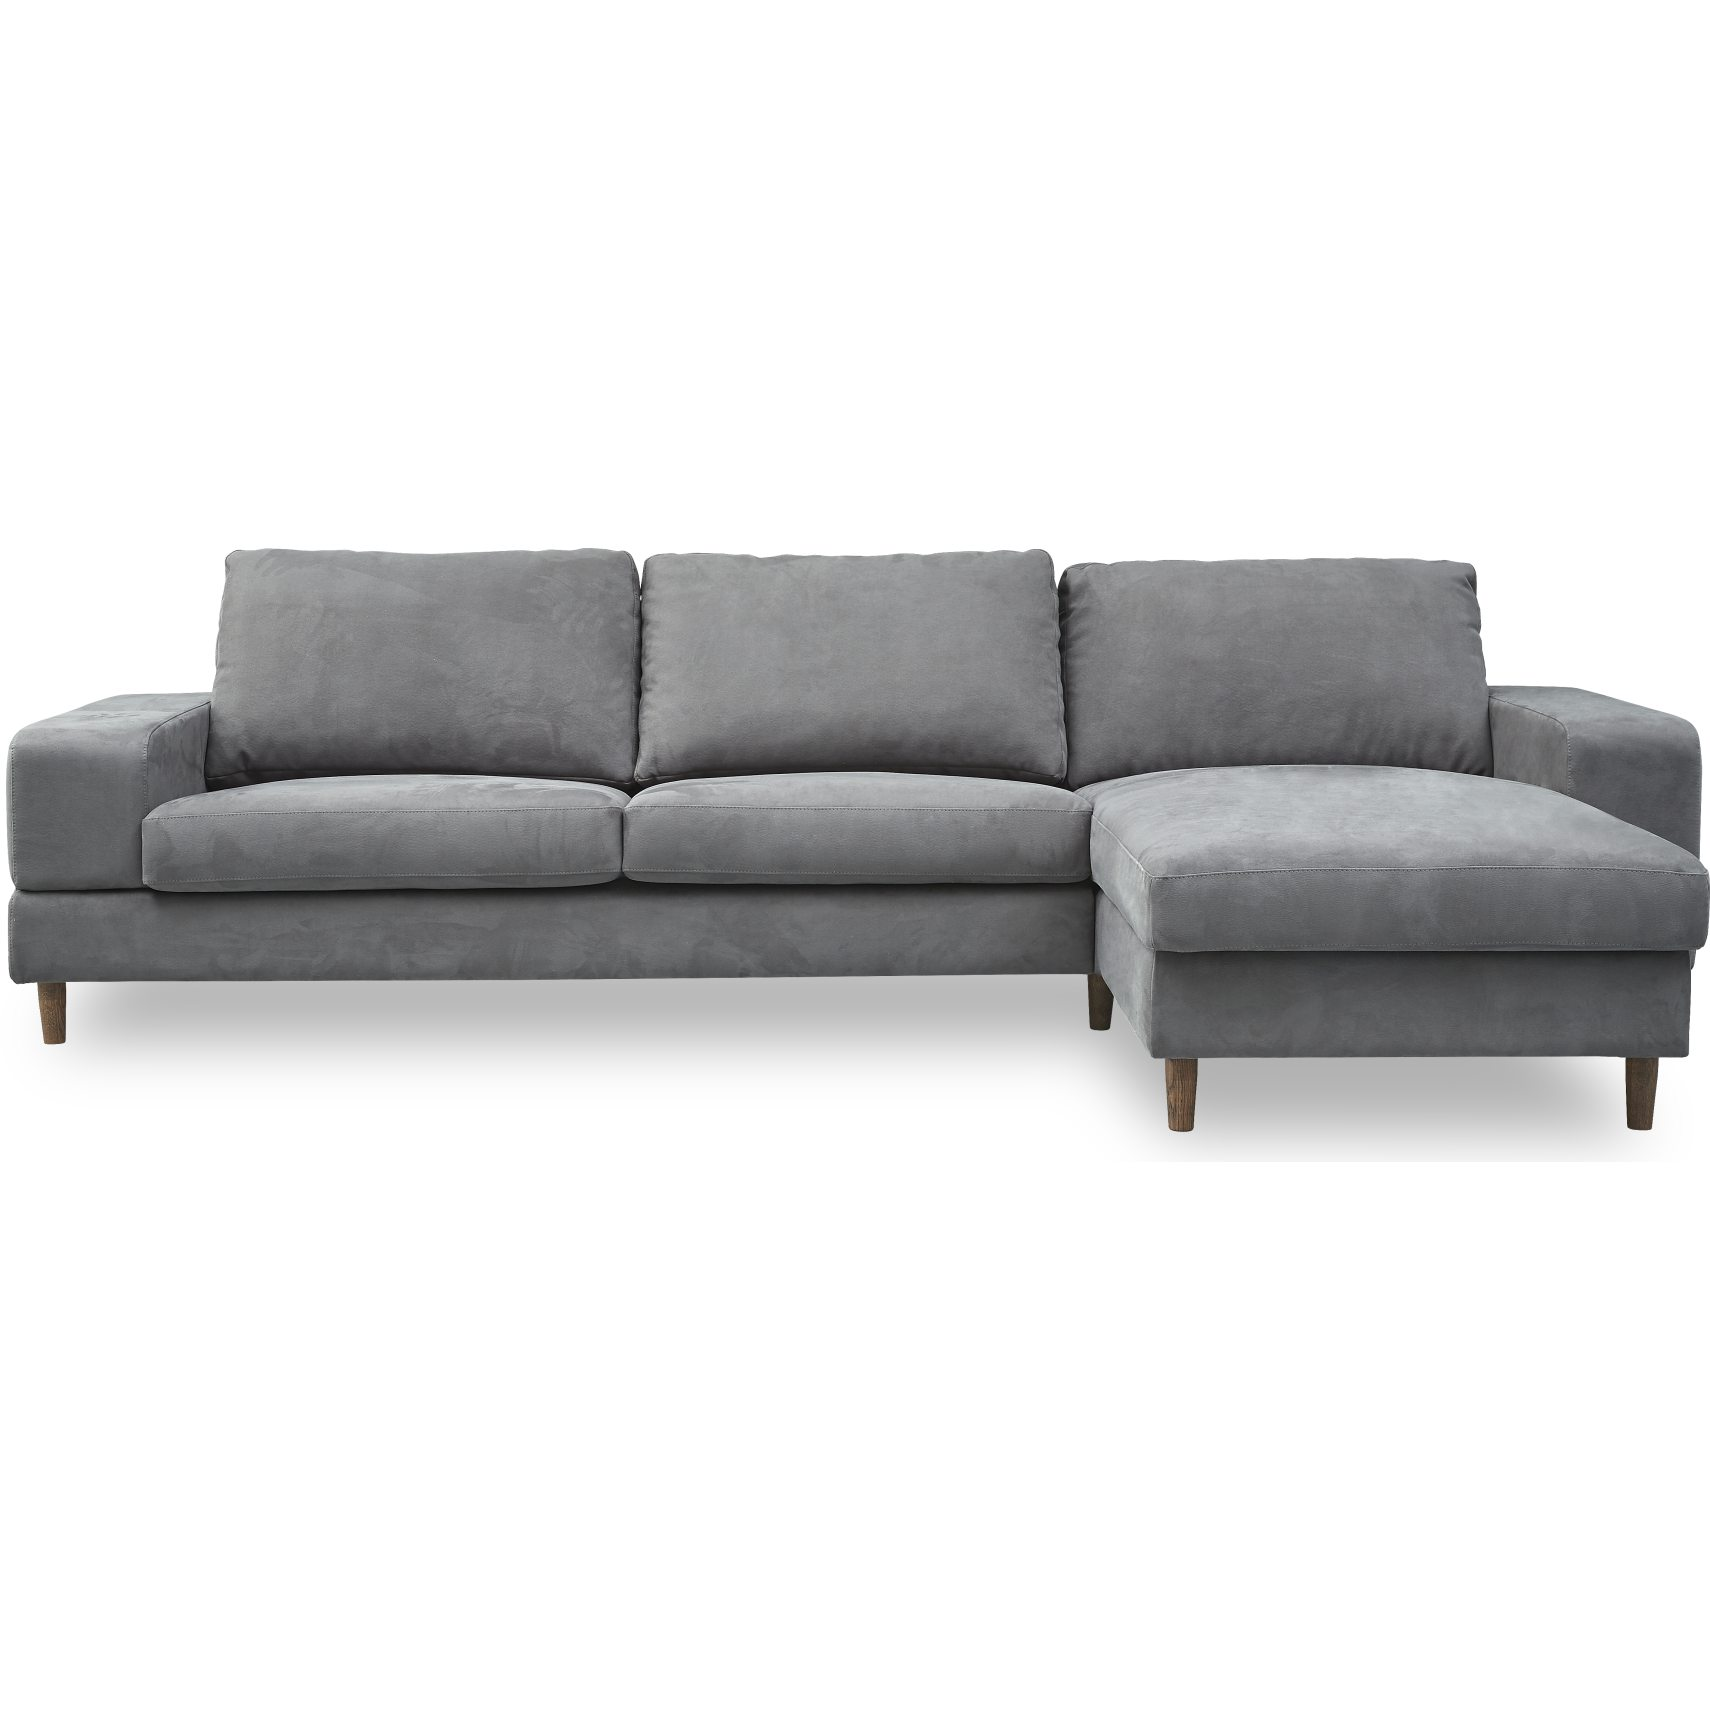 sofa med chaiselong Umbria Lux Sofa med chaiselong   14319,2 DKK | TILBUD | IDEmøbler sofa med chaiselong